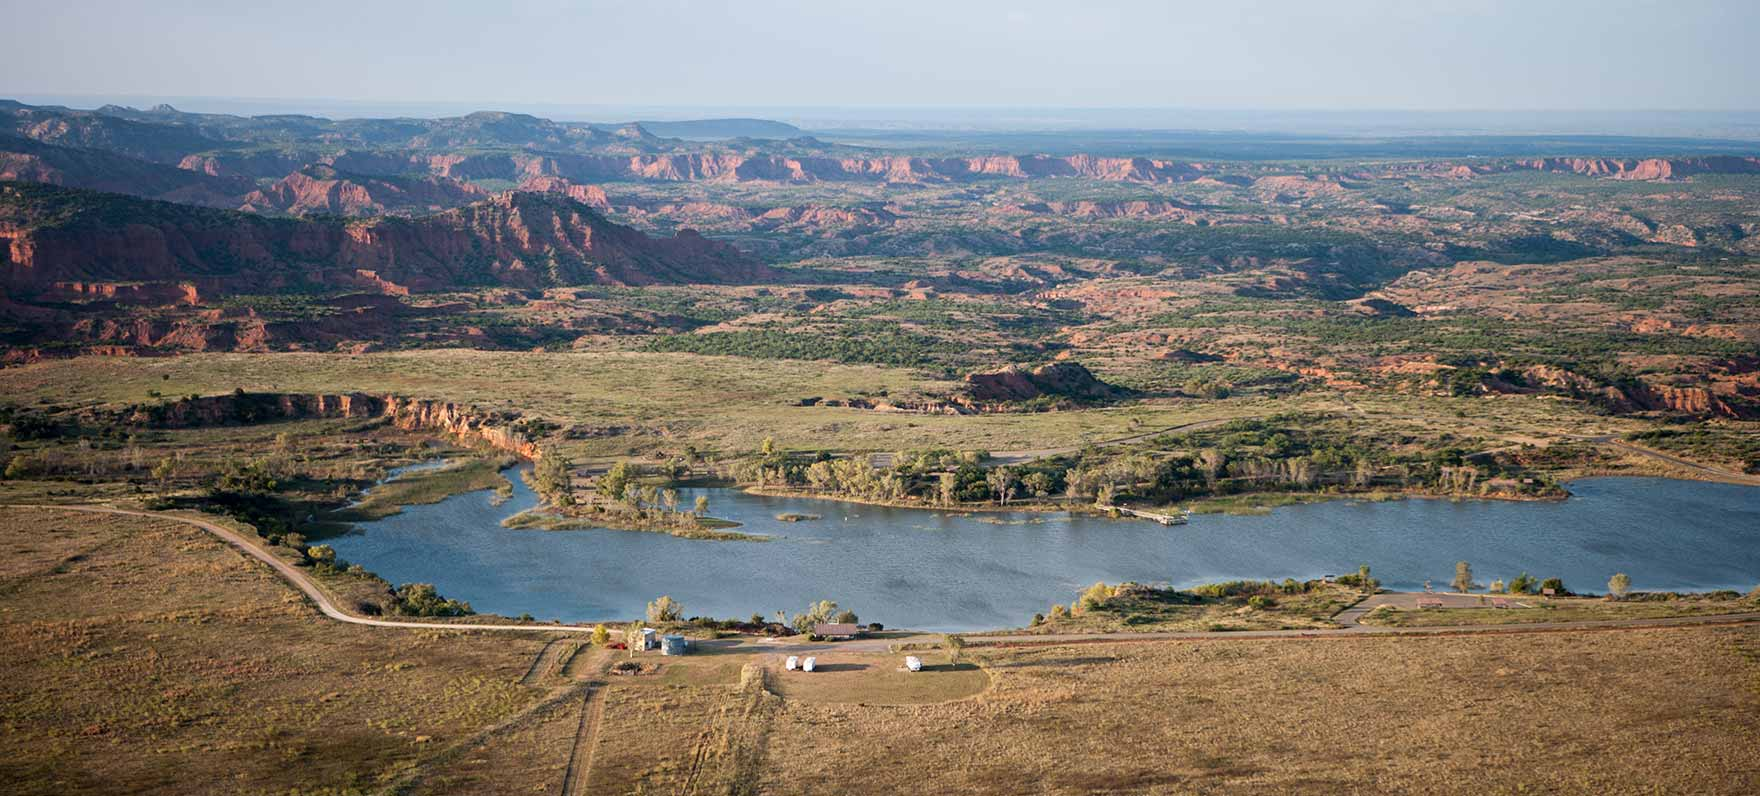 Caprock Canyons State Park-- a great place for nature photography.